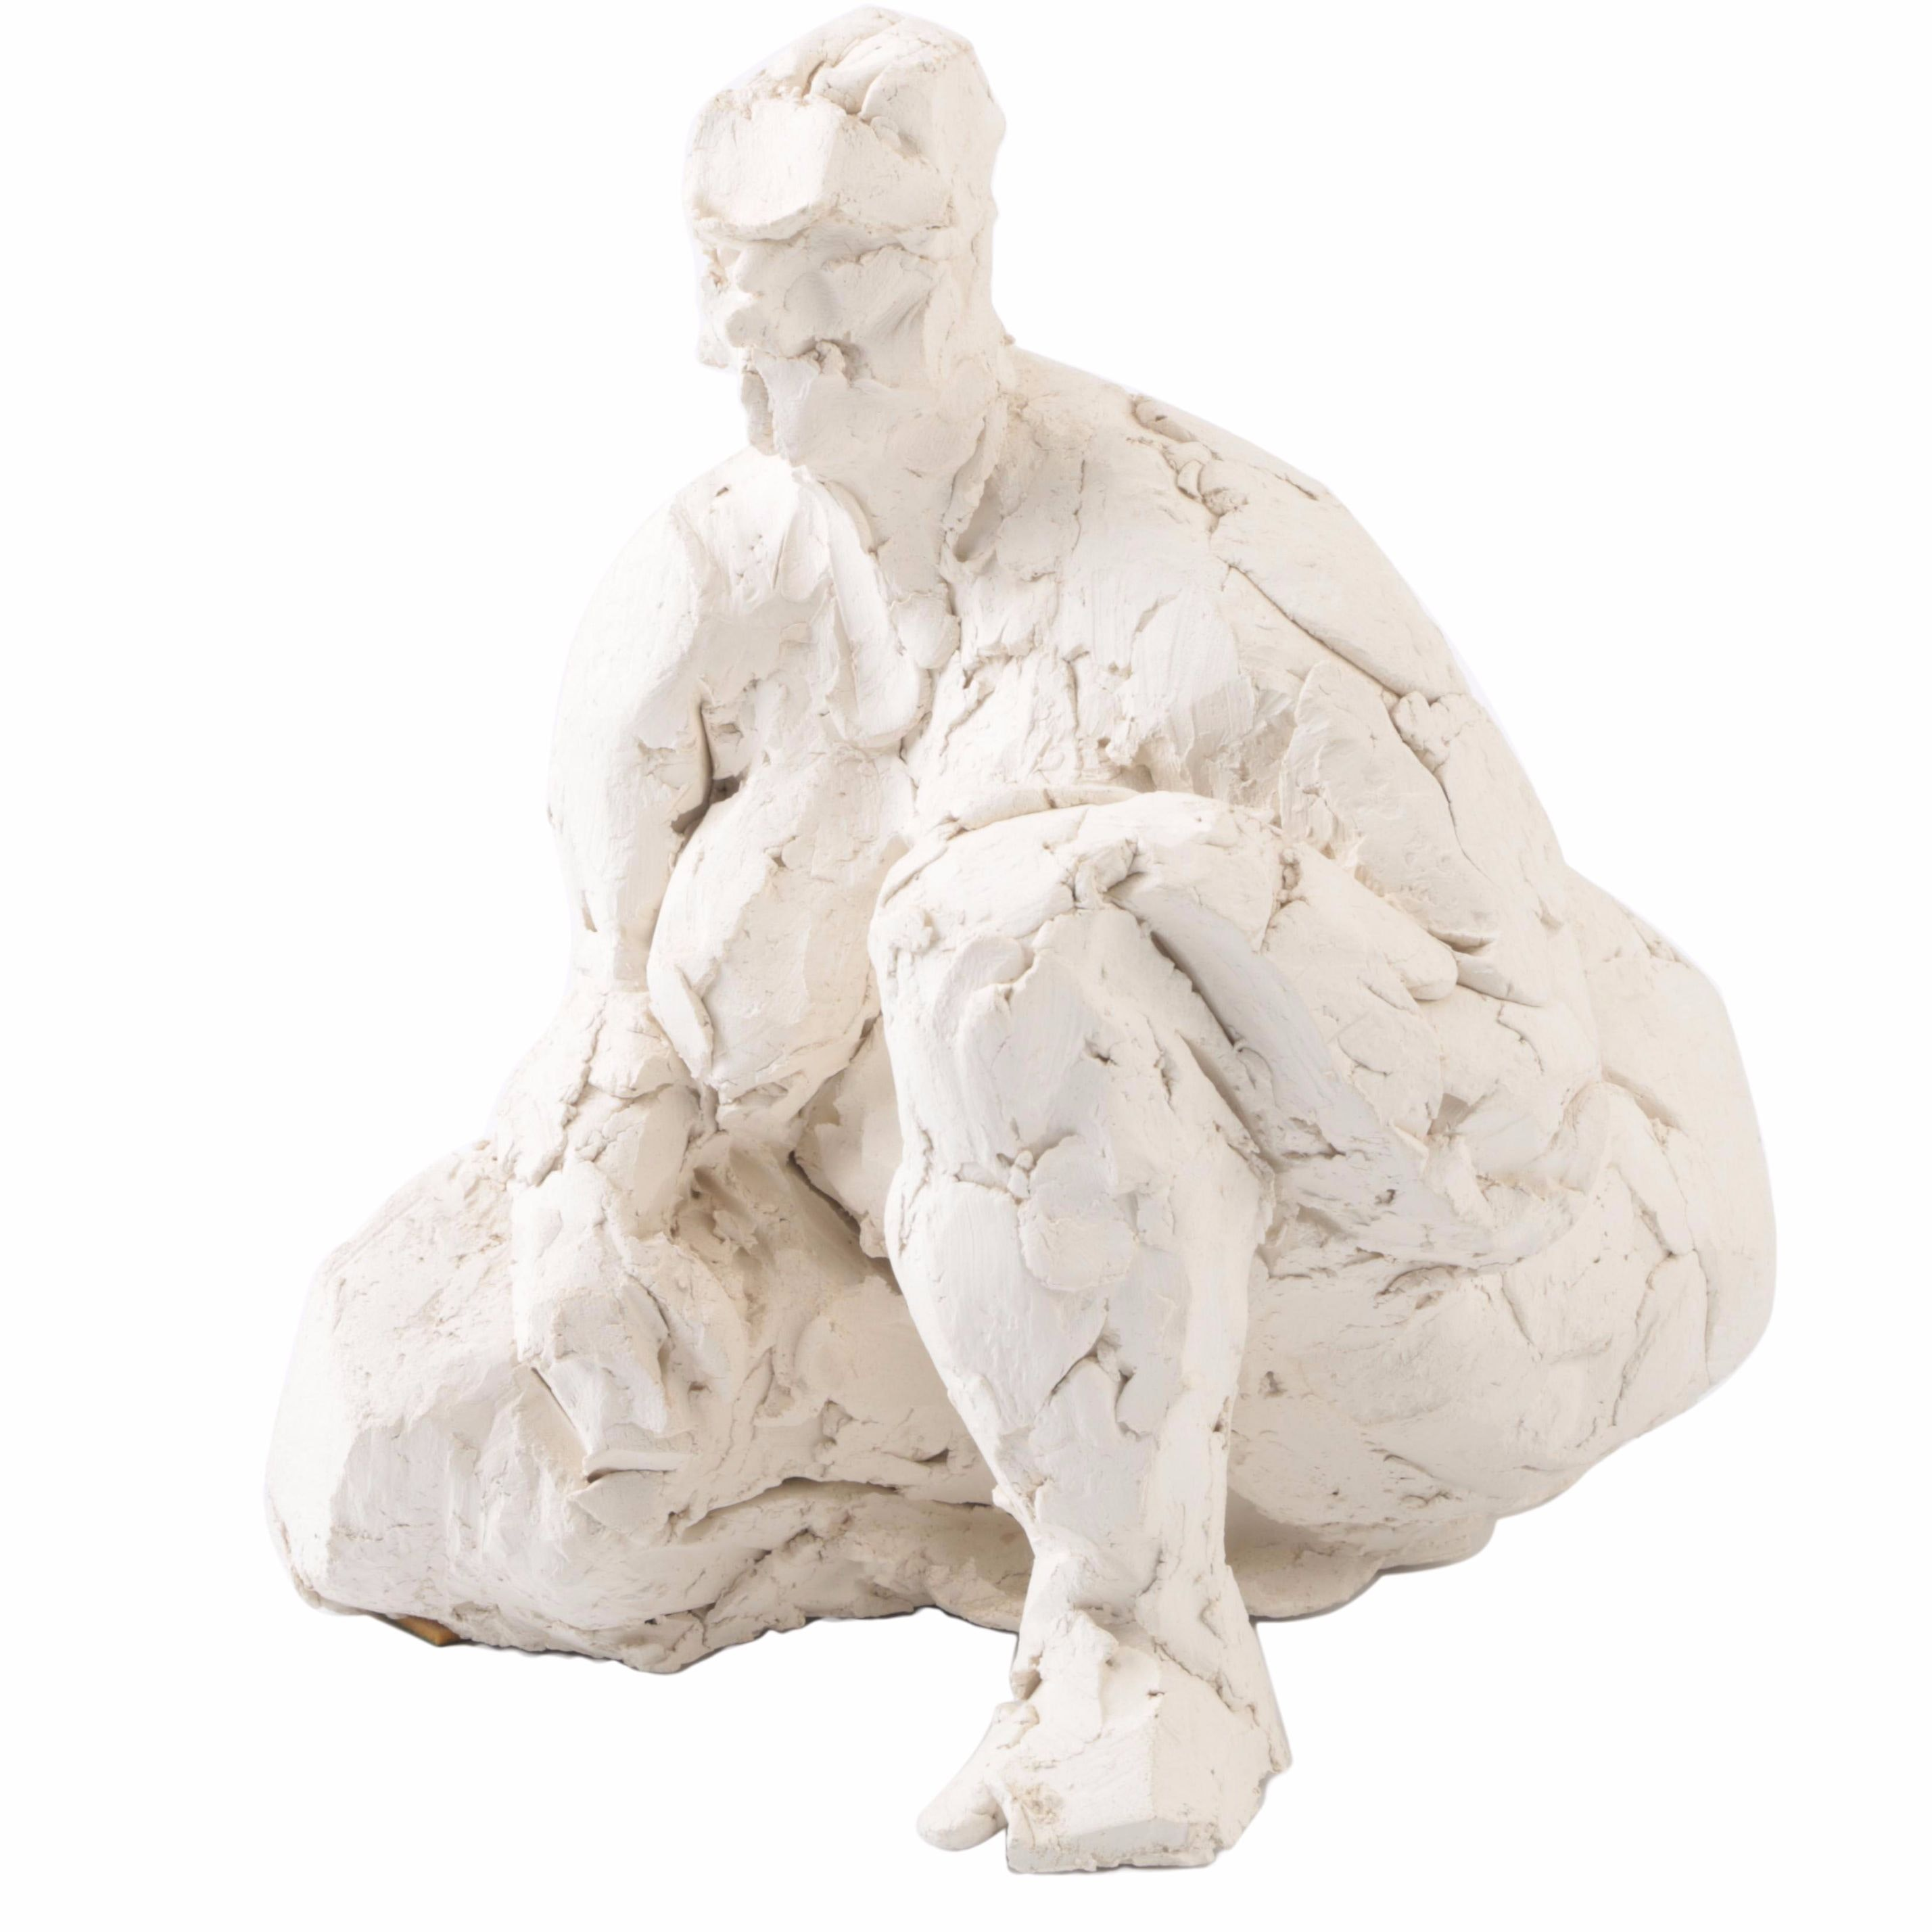 James Maher Plaster Sculpture Sketch of a Woman